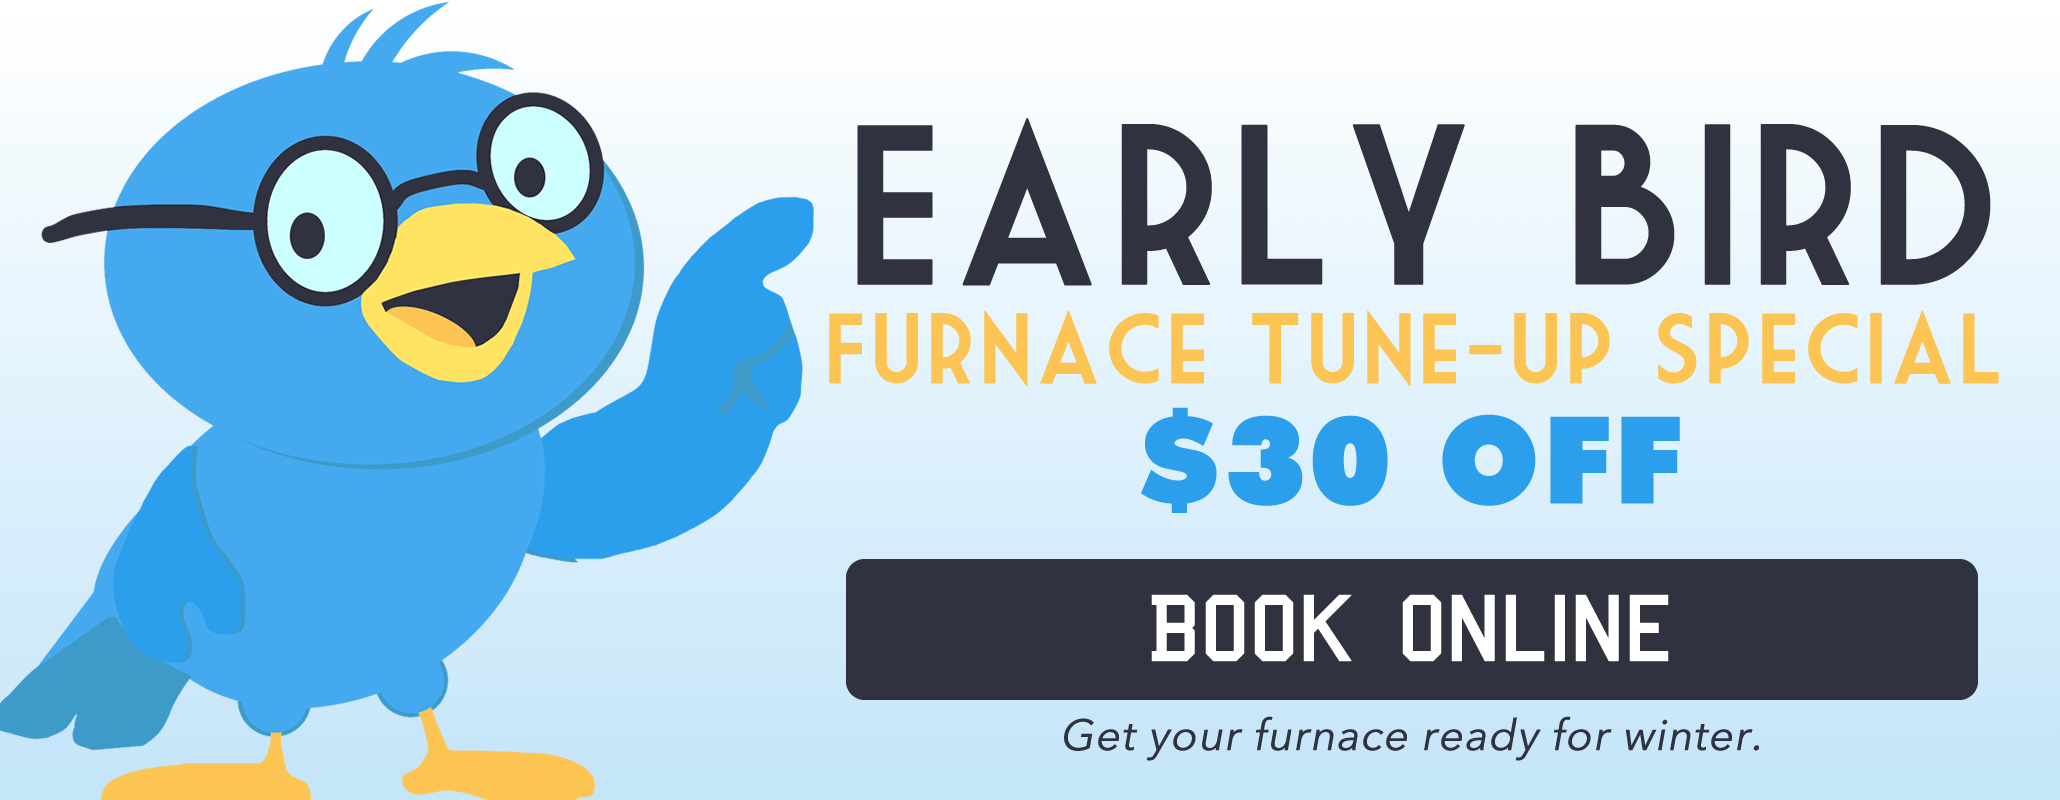 Get your furnace/boiler tuned up before you need it.